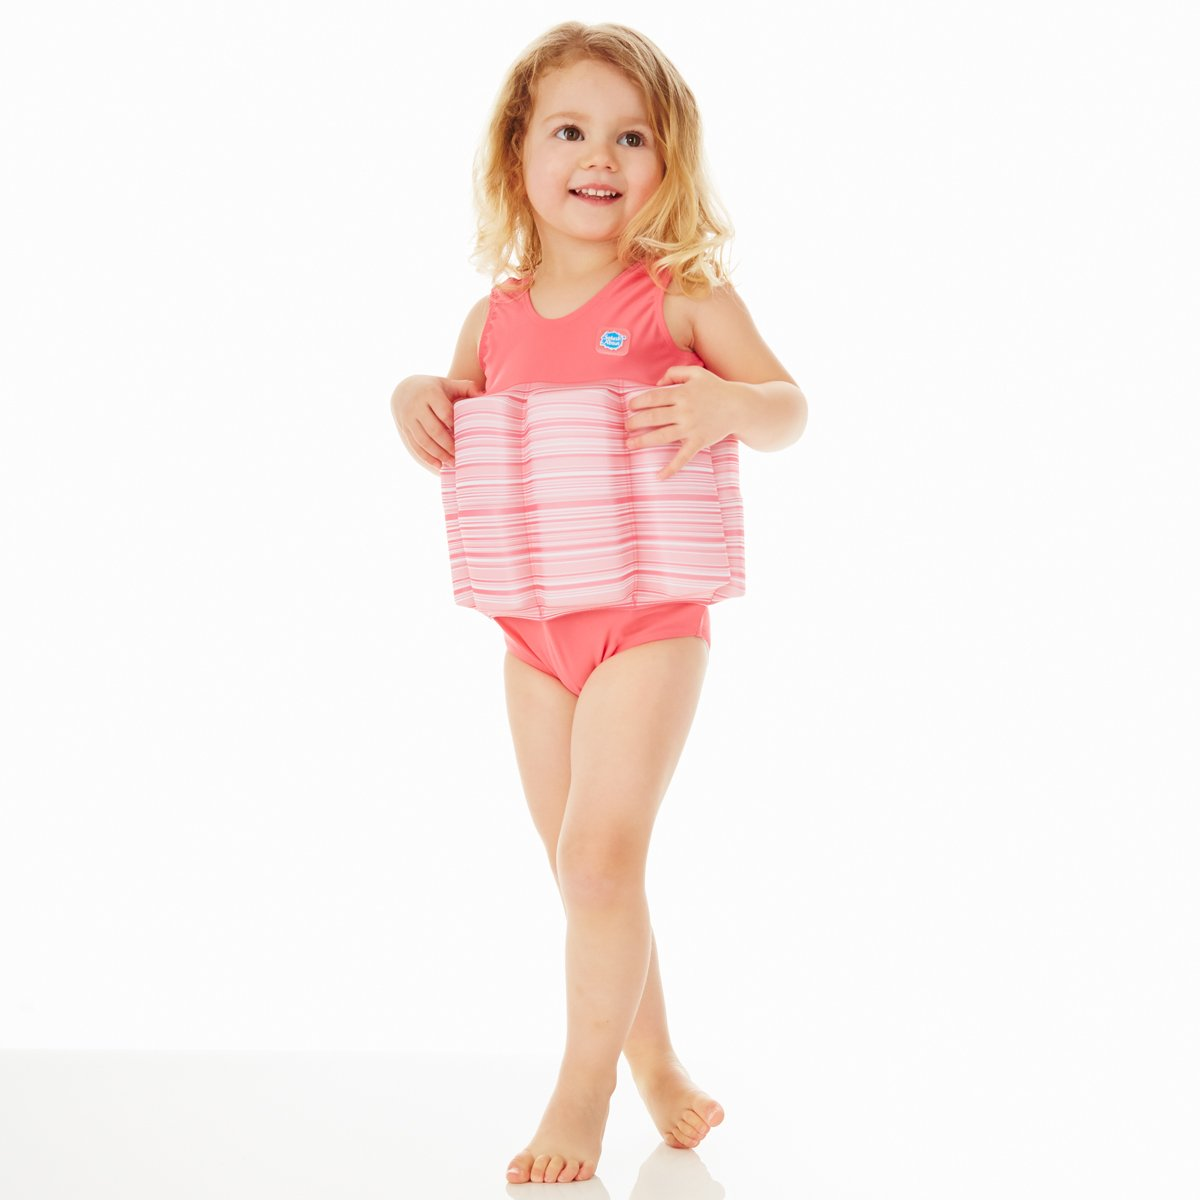 Splash About Collections Float Suit - Adjustable Buoyancy, 1-6 Years (Pink Classic, 4-6 Years (Chest: 61cm   Length: 43cm)) by Splash About (Image #2)